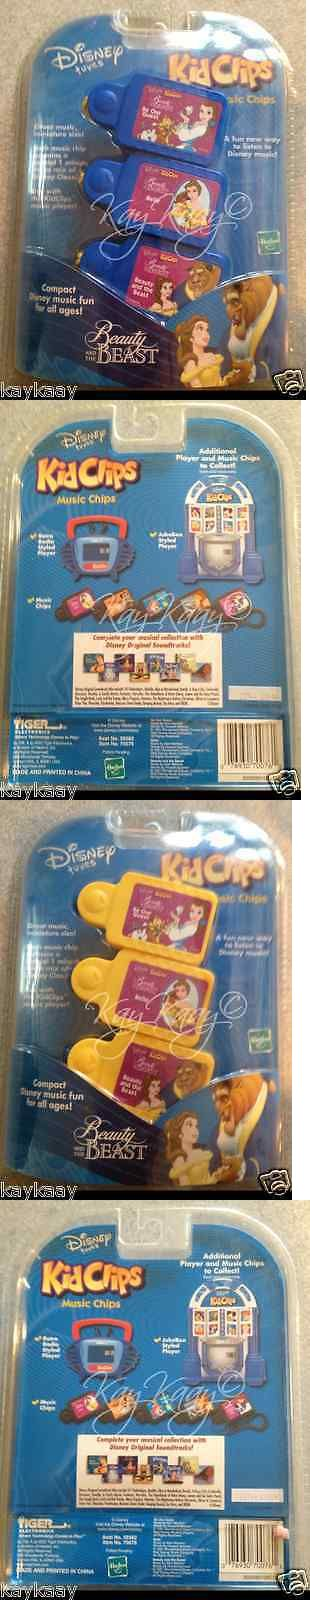 Radios Musical Toys 145943: New Disney Tunes Kidclips Kid Clips Music Chip Song 3-Pack The Little Mermaid -> BUY IT NOW ONLY: $46.99 on eBay!